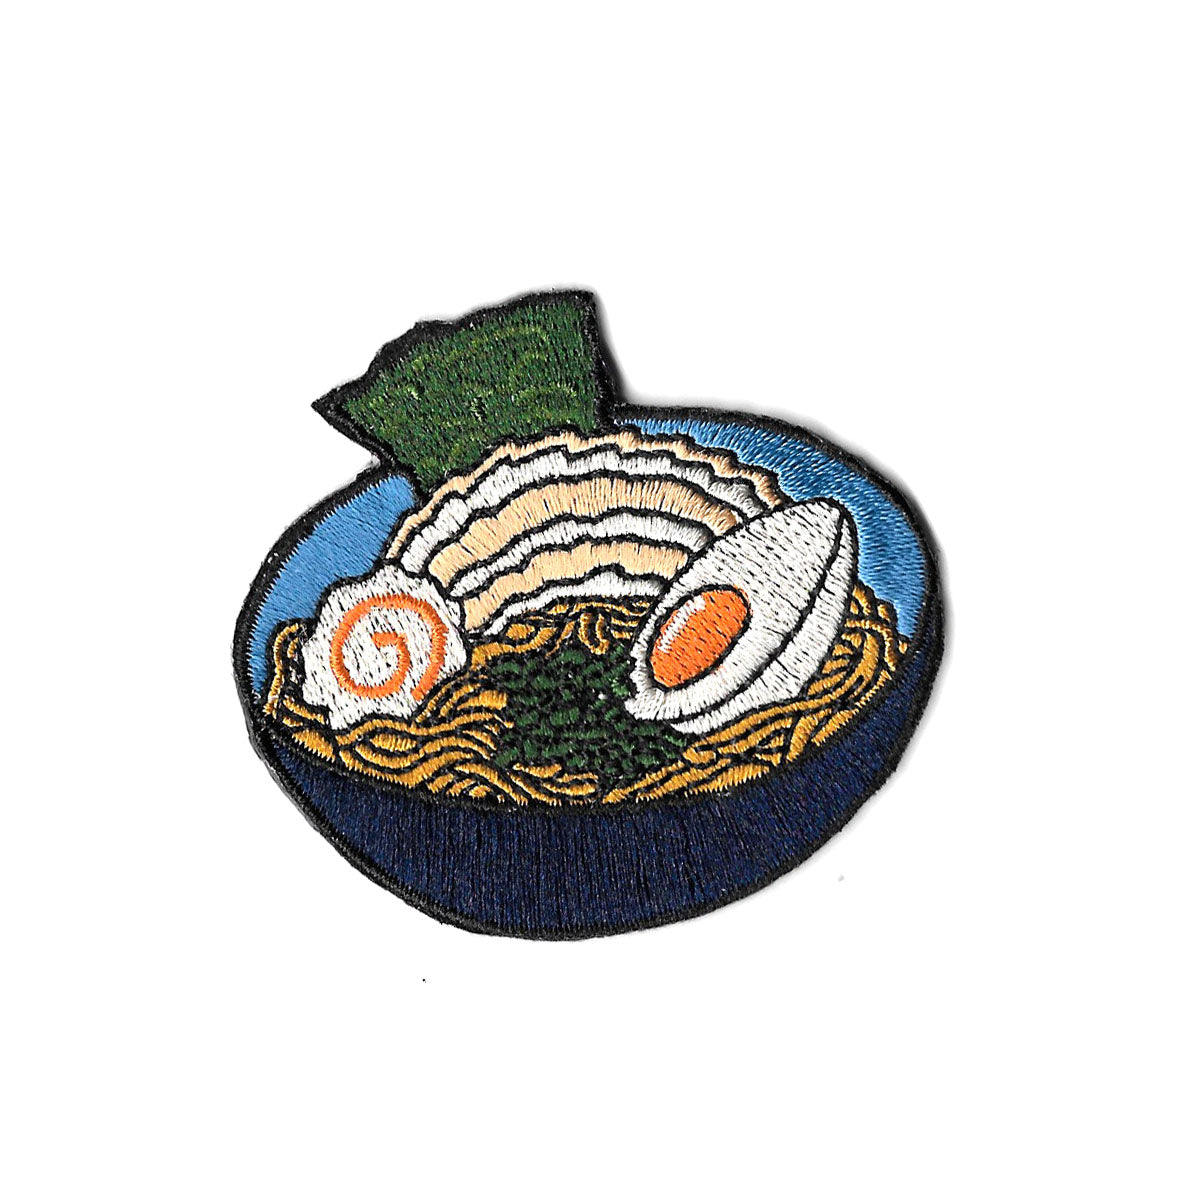 Limited Edition Patches Marowak Shiny Ramen Patch Custom Patches Cubone Eating Ramen Pokemon Embroidered Custom Iron-On or Sew-On Patch